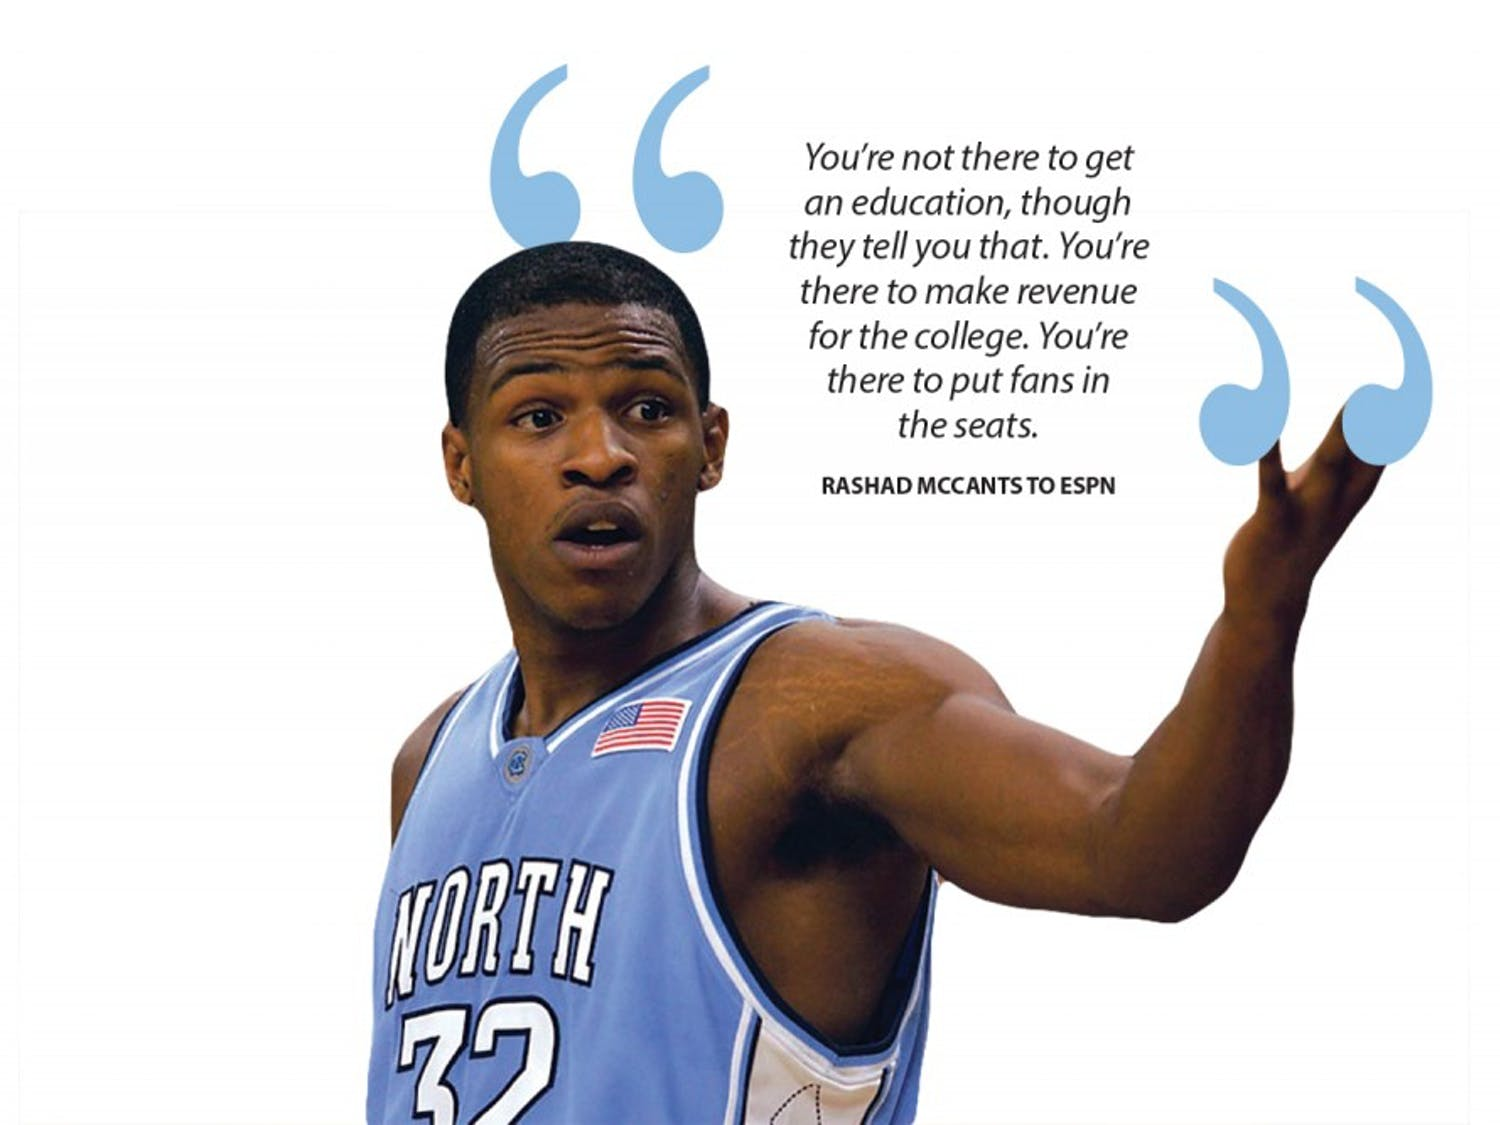 """Last Friday, Rashad McCants — former UNC basketball player and a member of the 2005 national championship team — gave an interview with ESPN's """"Outside the Lines"""" and discussed his academic experience at UNC."""